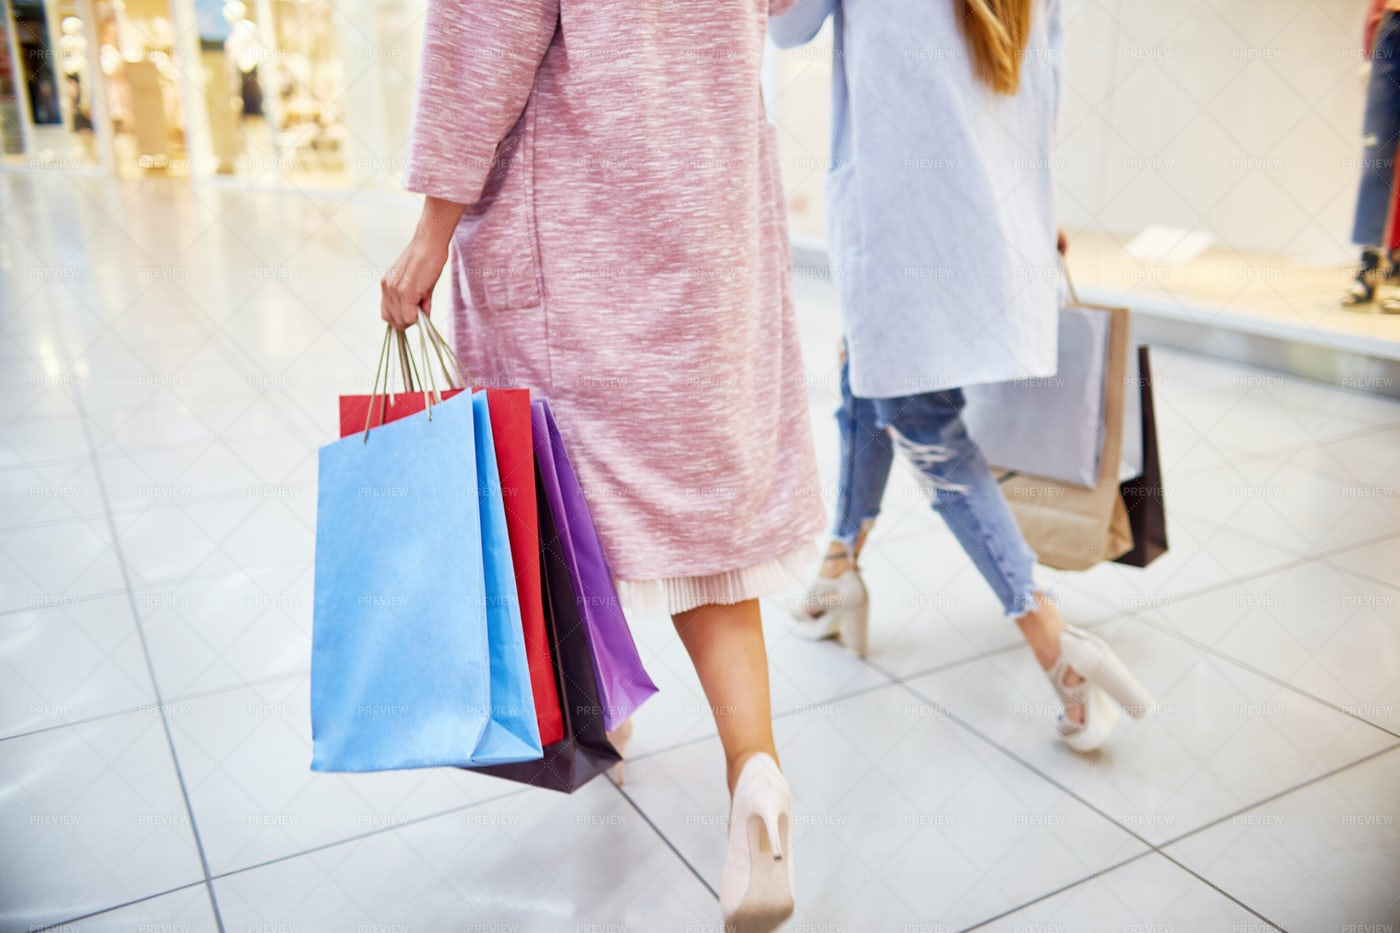 Young Women Going Shopping On Black...: Stock Photos